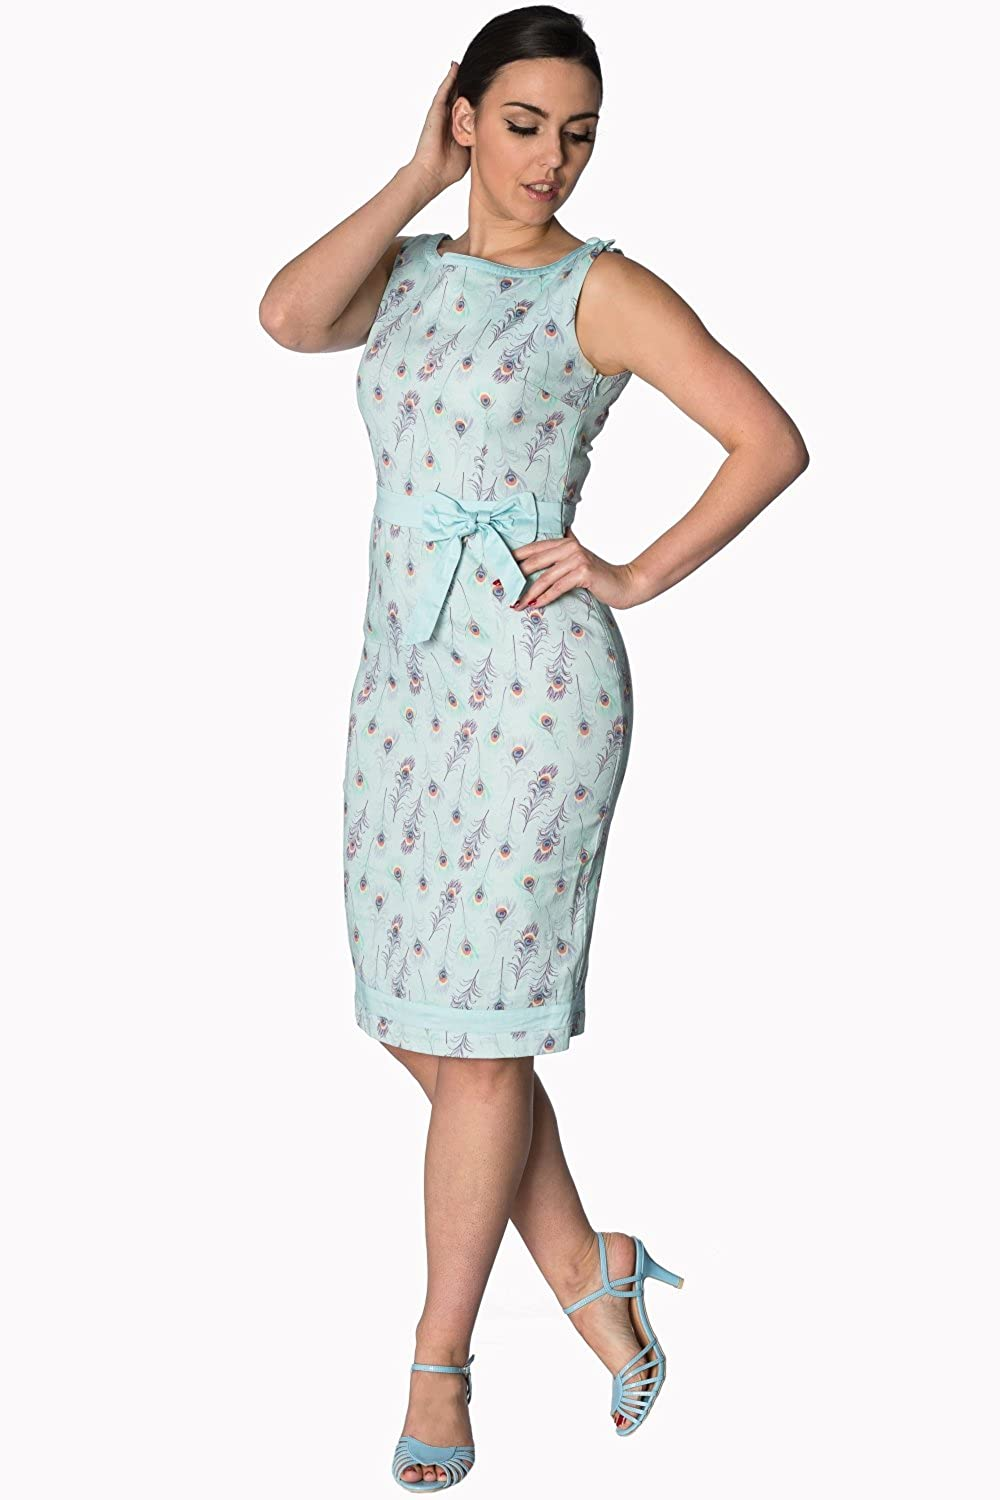 03d4b90555 Banned Plus Size Peacock Vintage Retro Fifties Style Pin up Wiggle Dress  Blue at Amazon Women s Clothing store